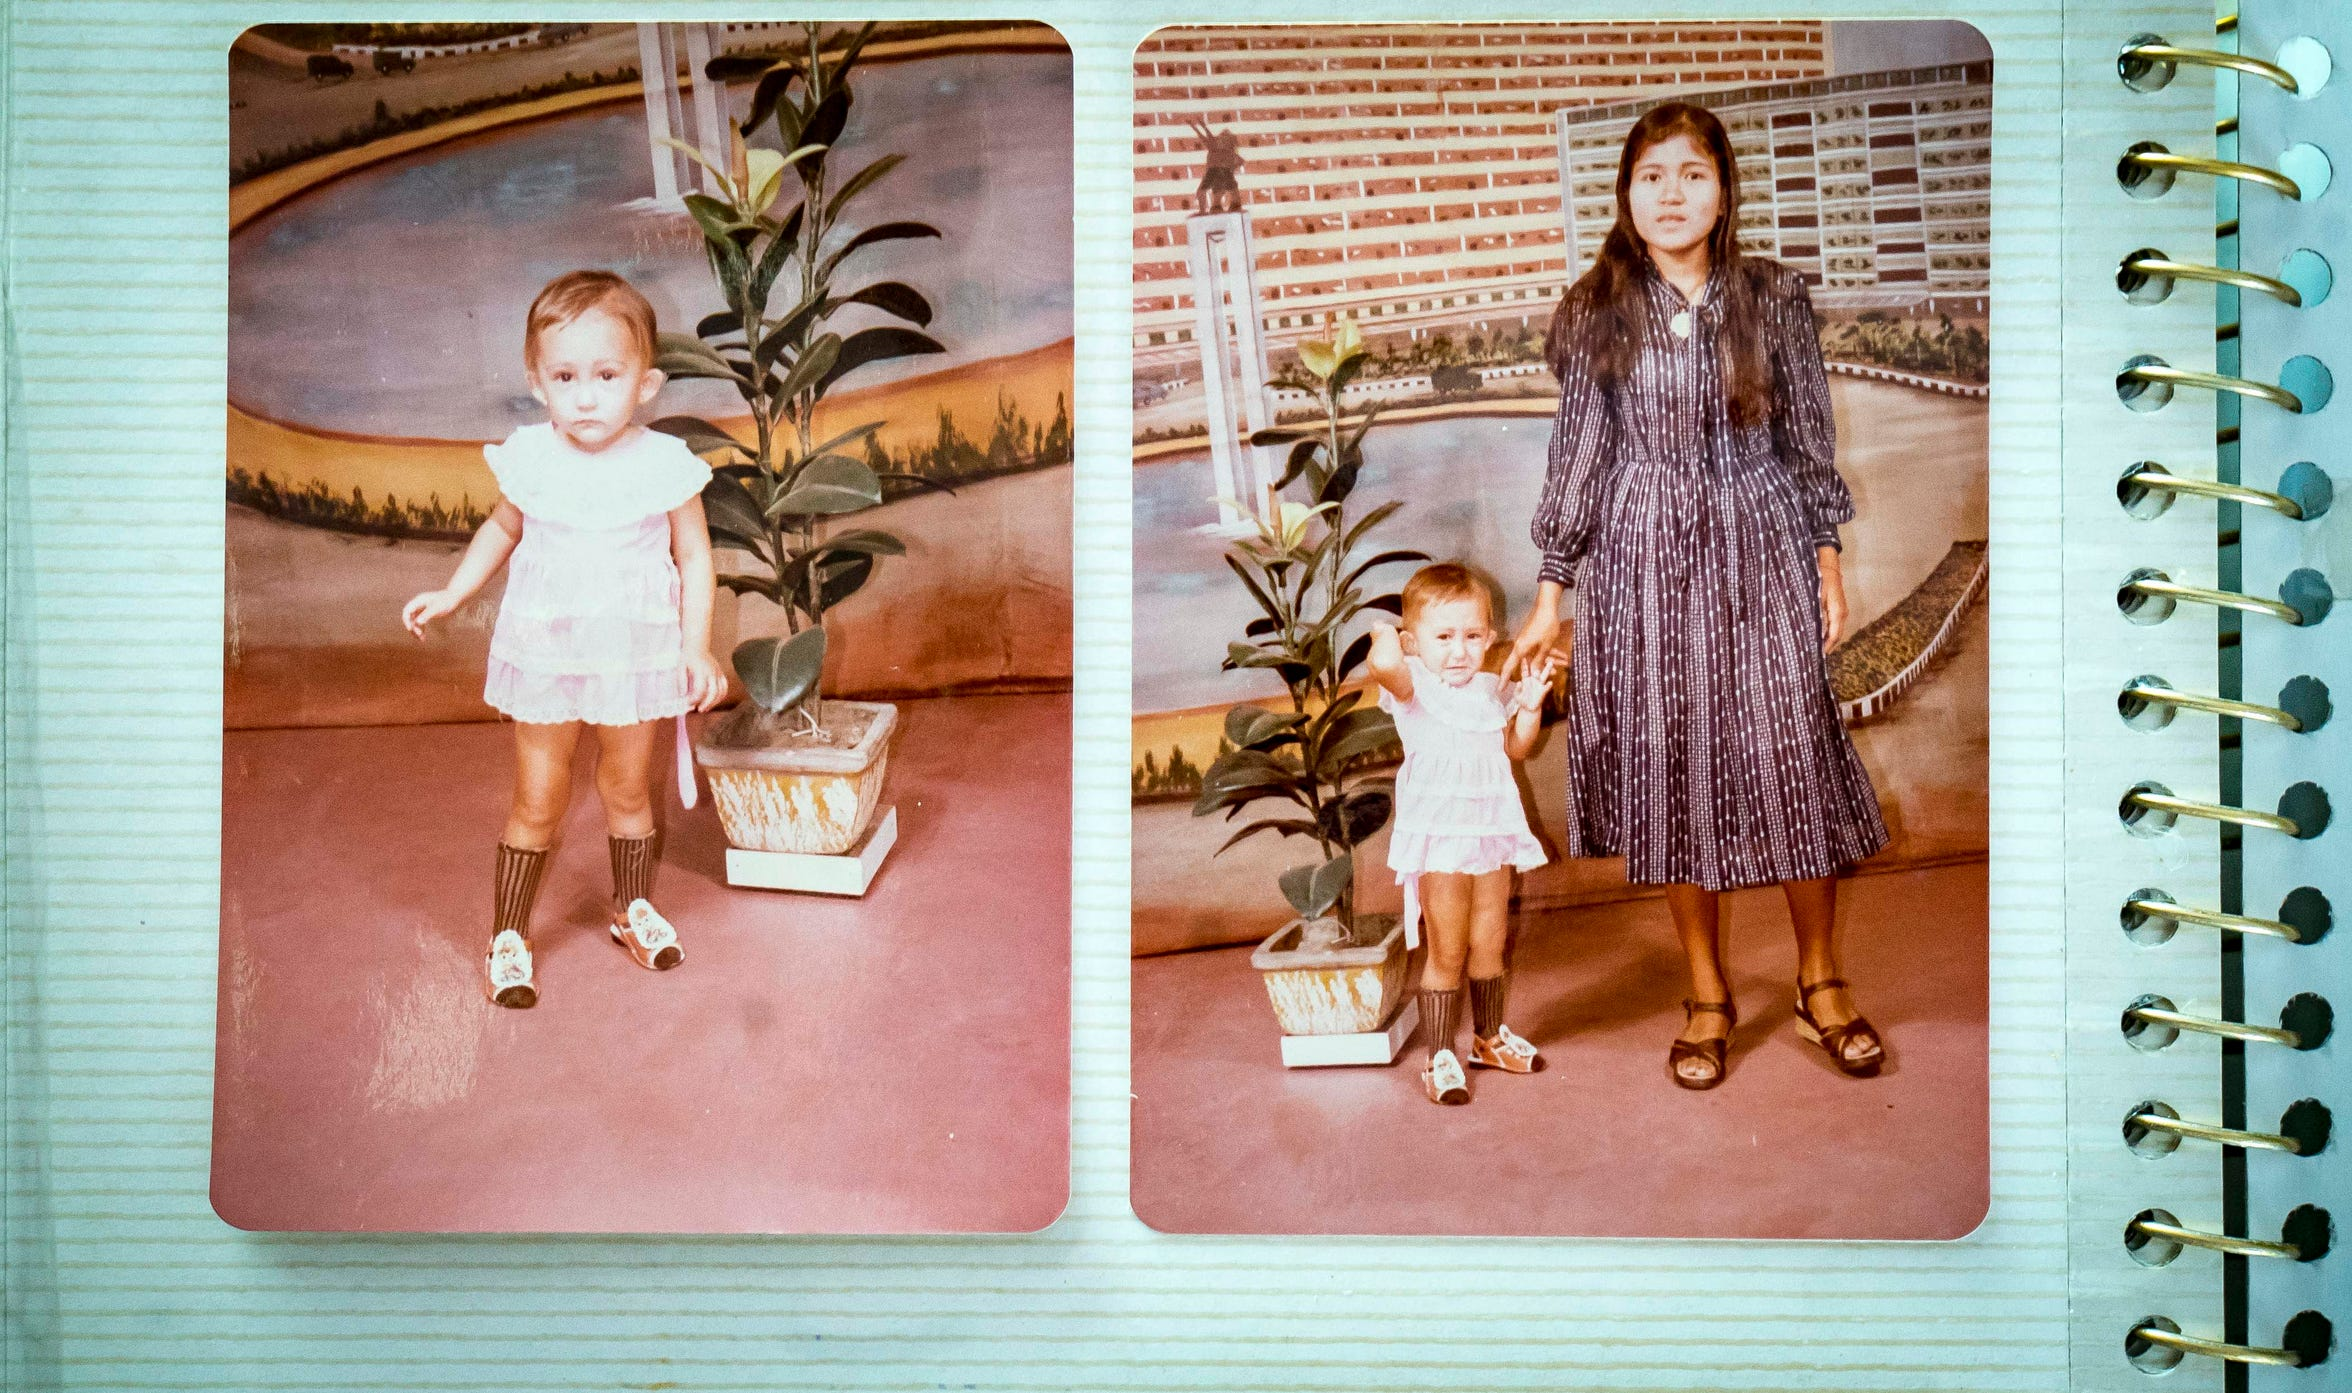 "Photo of A.W ""Dub"" Barron's daughter Yusimanidar Abdullah, left, with her mother, Zalikha Abdullah, in Lhoksukon, Indonesia, 1976, from family photo album."